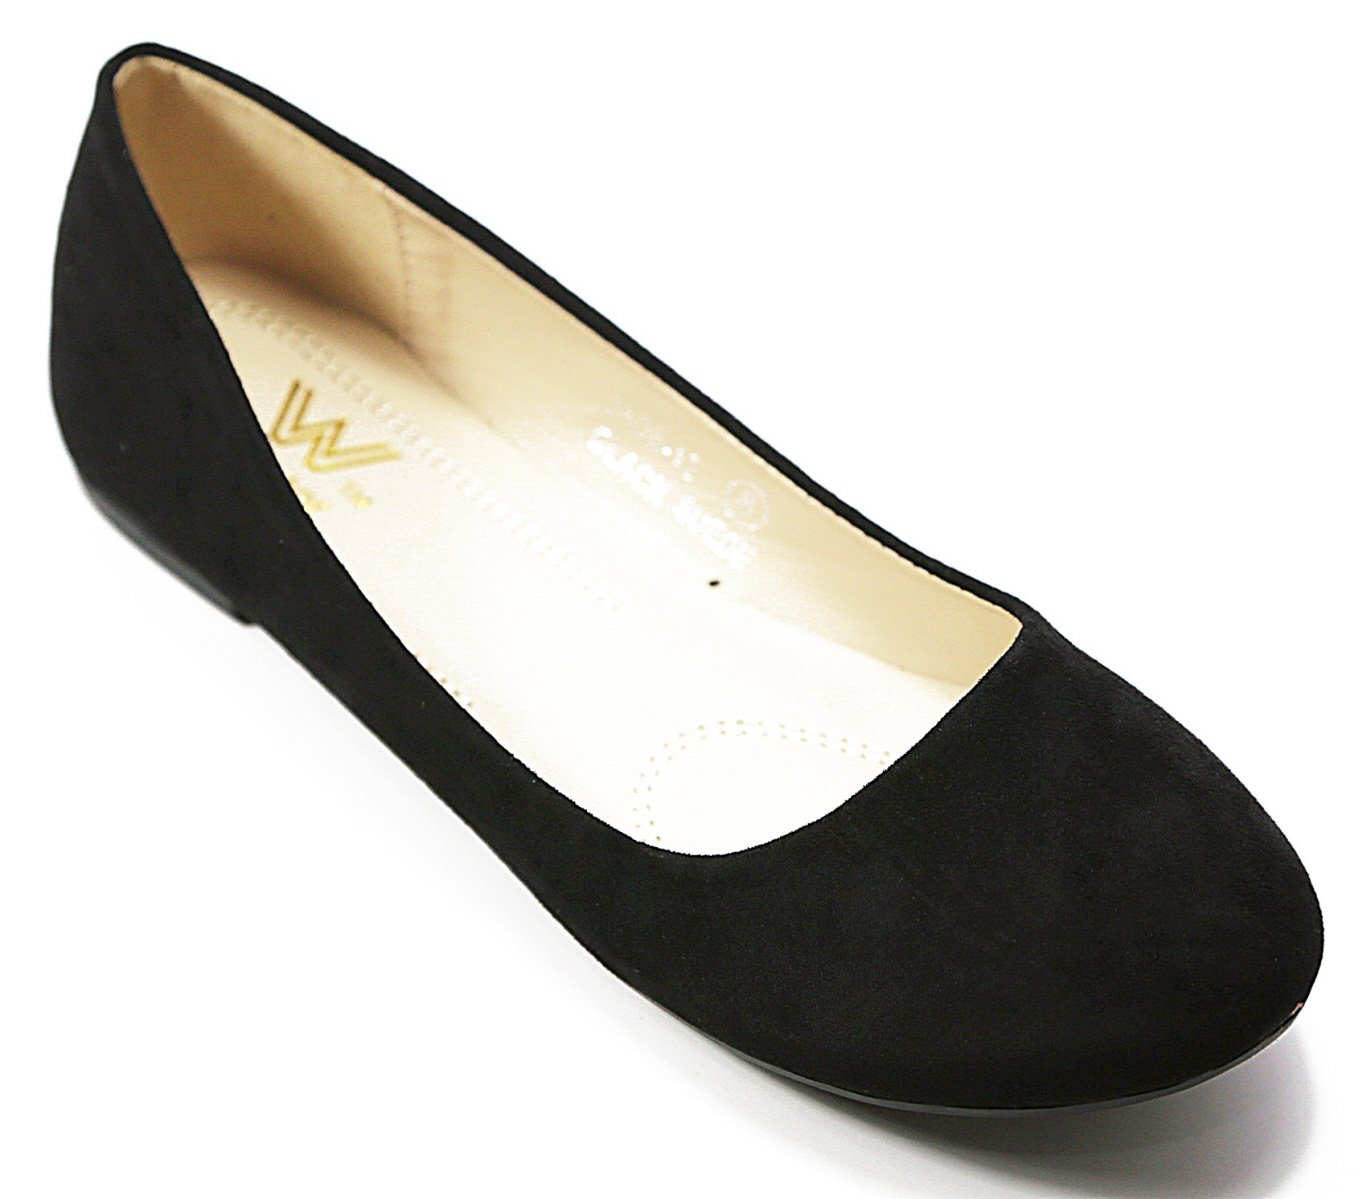 Walstar Women's Basic Round Toe Ballet Flat Shoes B015YJ7BDK 7.5 B (Run Small, Order 1/2 size UP) Black Suede